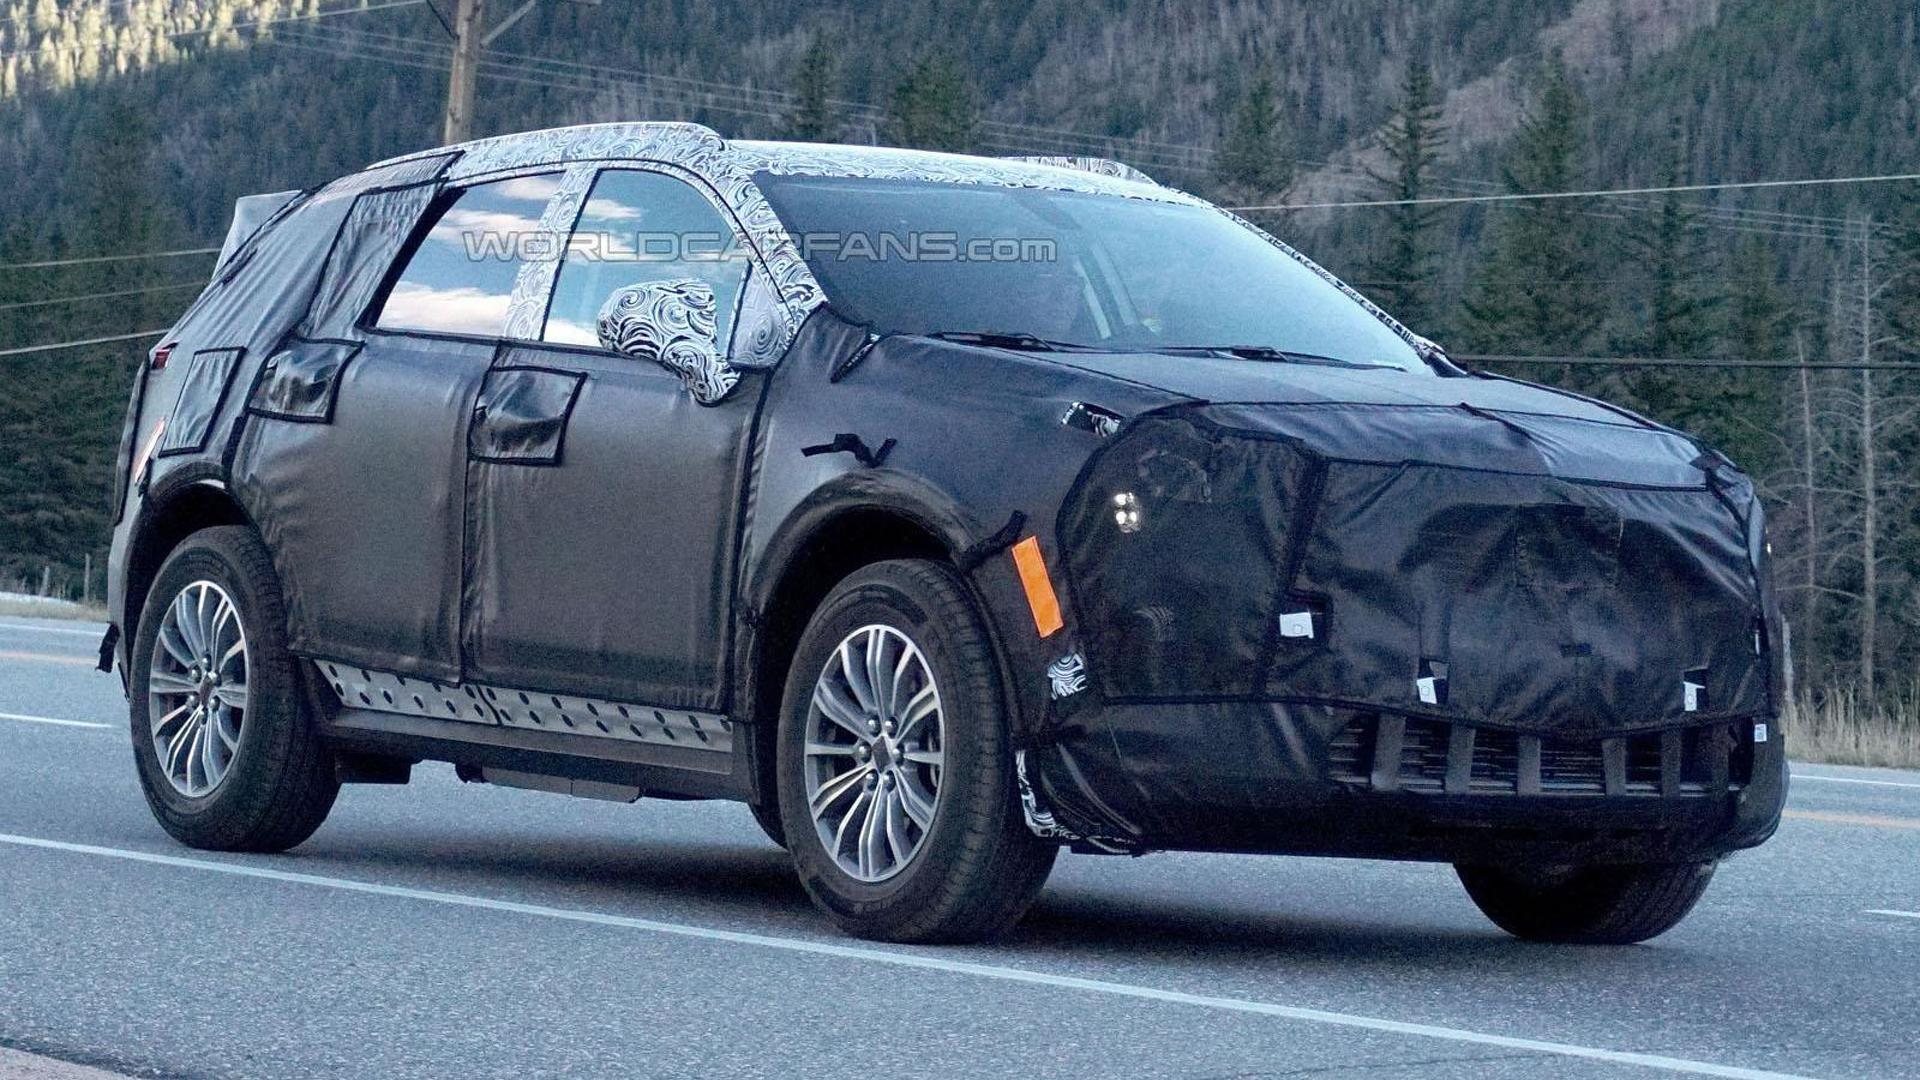 Cadillac entry-level crossover to be built at Orion Assembly